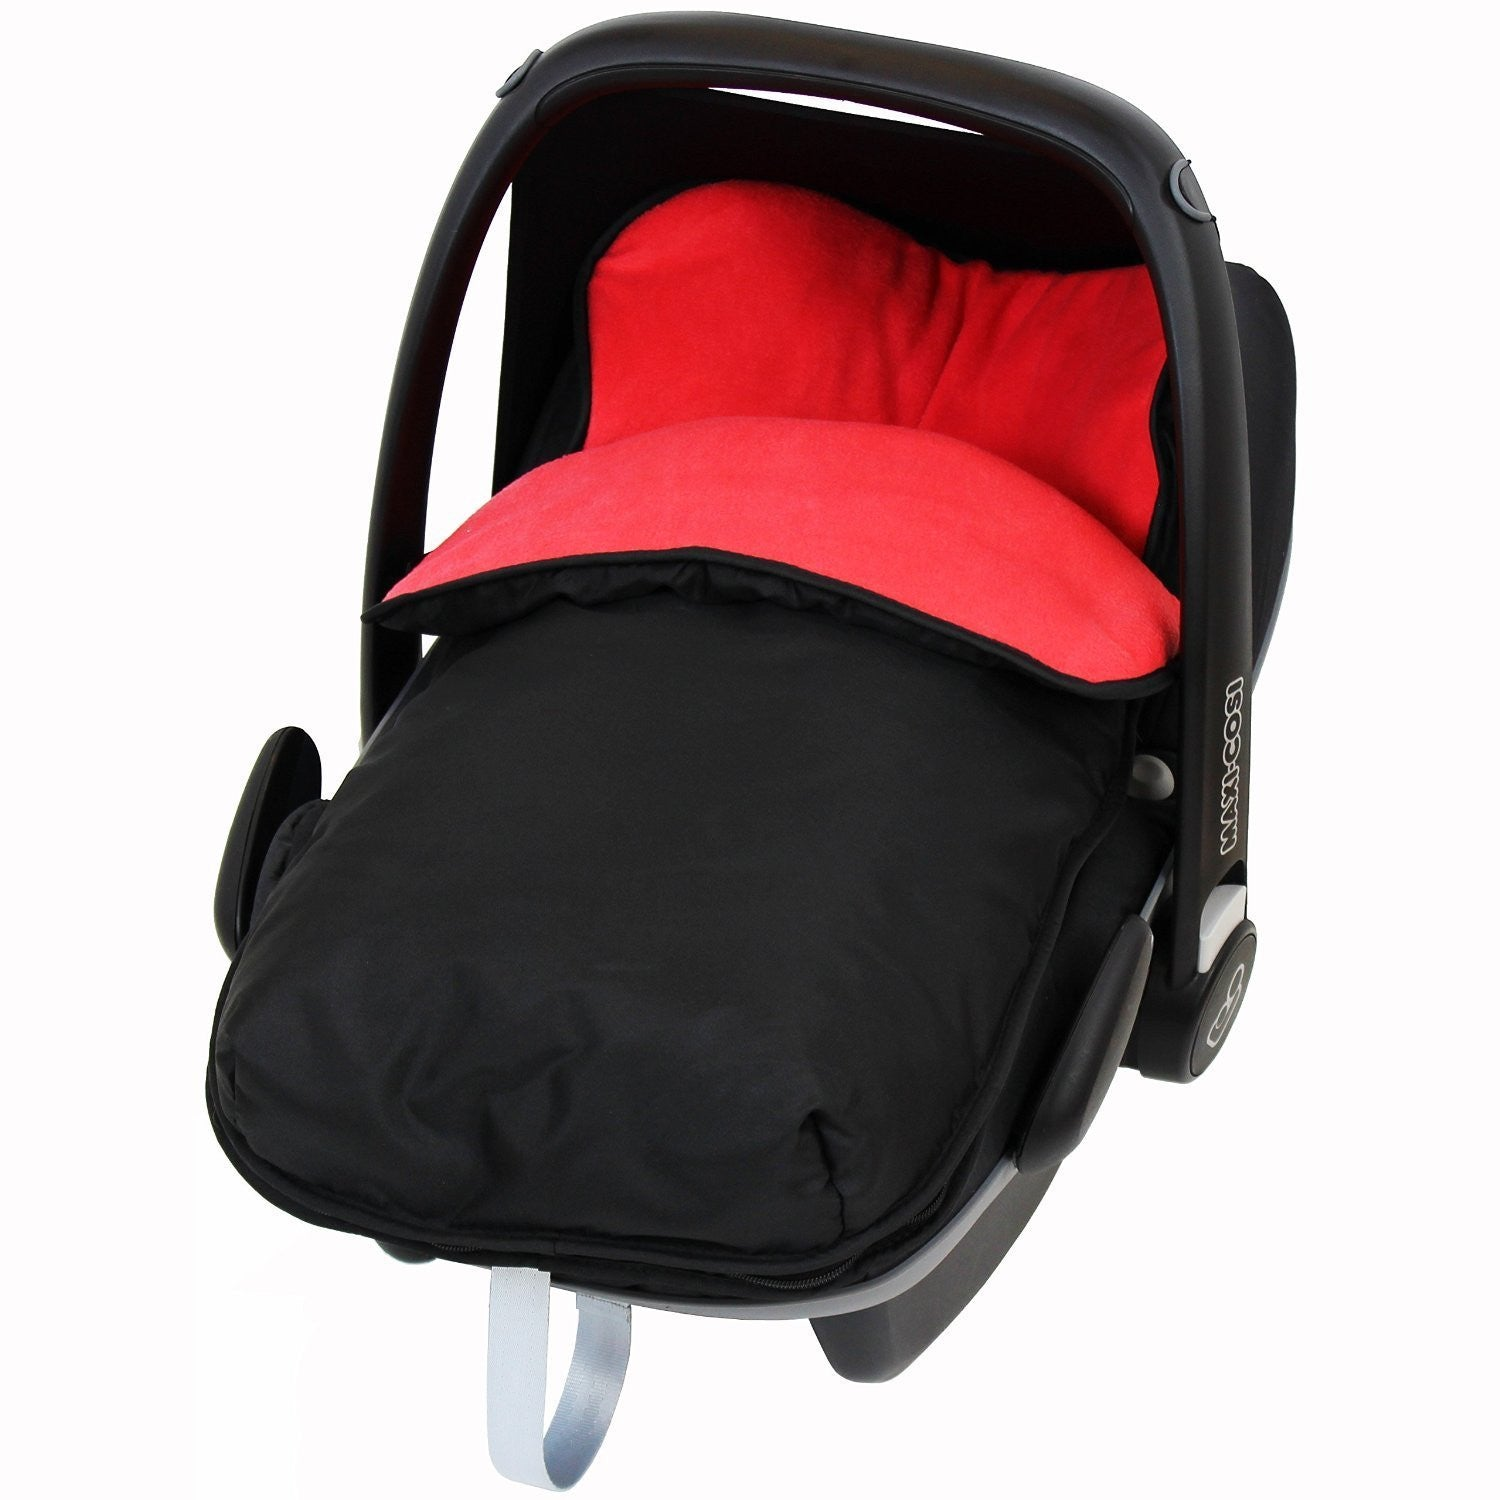 maxi cosi footmuff instructions